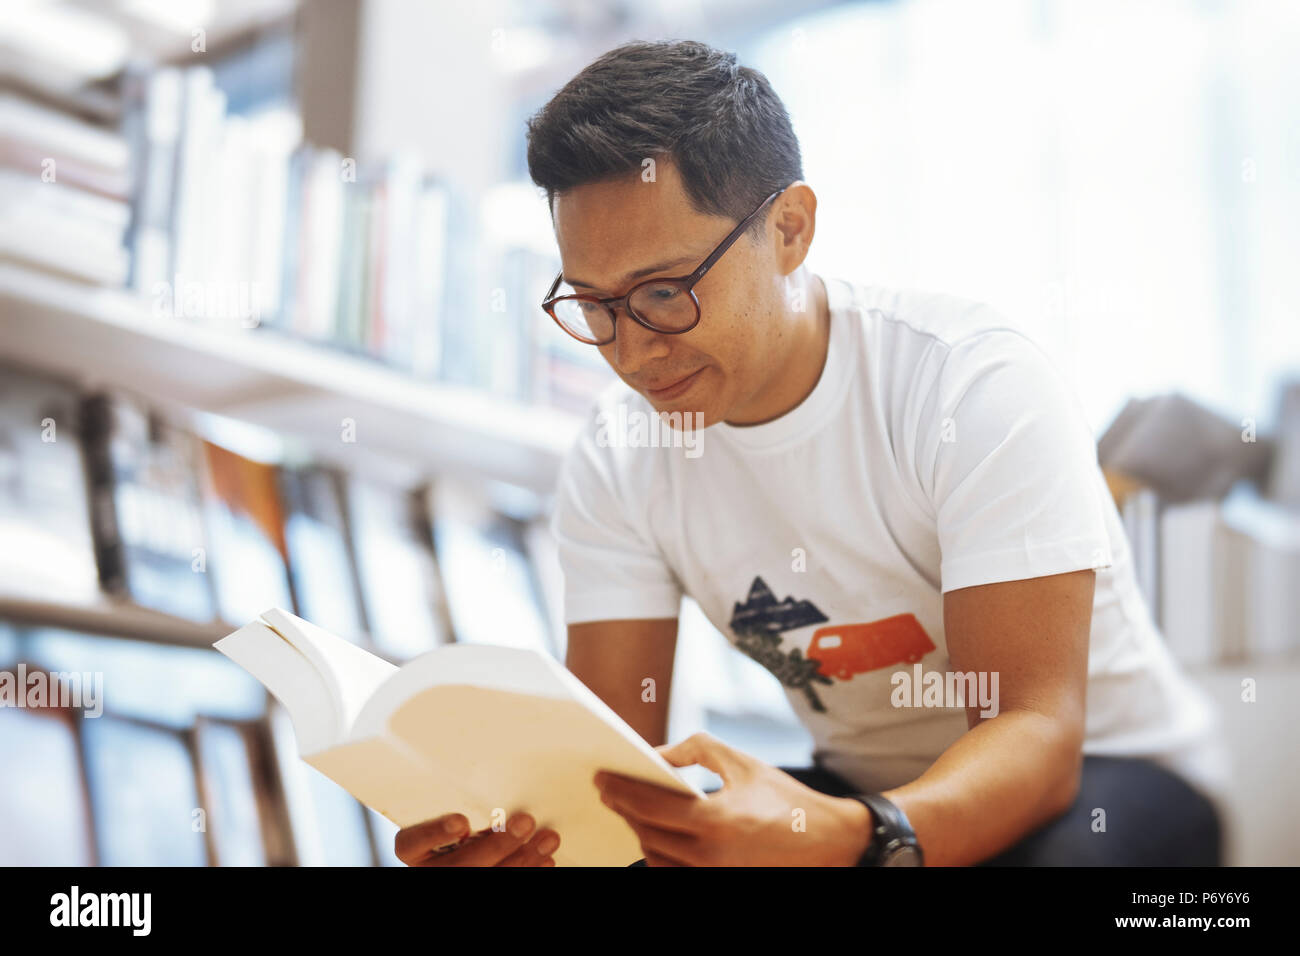 Young spectacled man sitting in a book store and reading book with blank cover - Stock Image